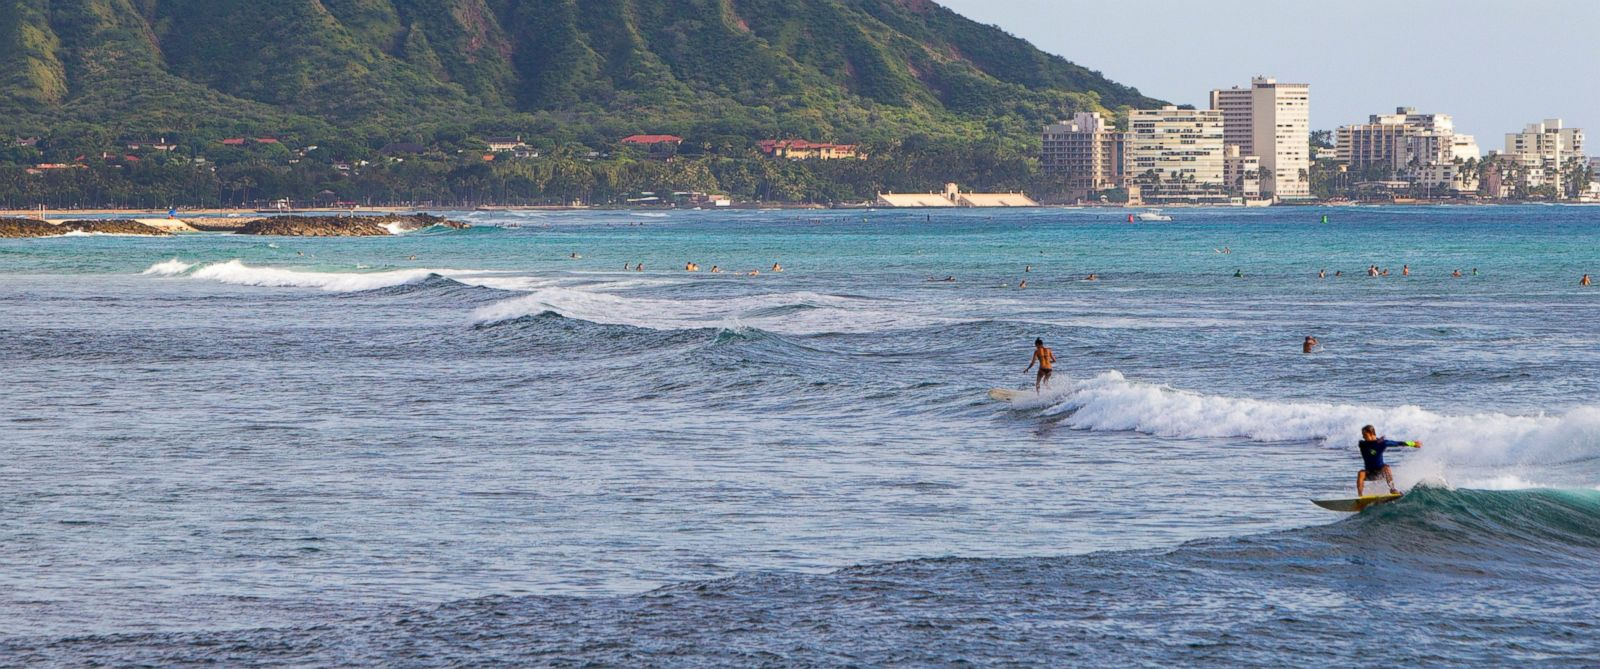 PHOTO: This Nov. 4, 2014 file photo shows surfers off Ala Moana Beach Park, in Honolulu with Diamond Head mountain in the background.